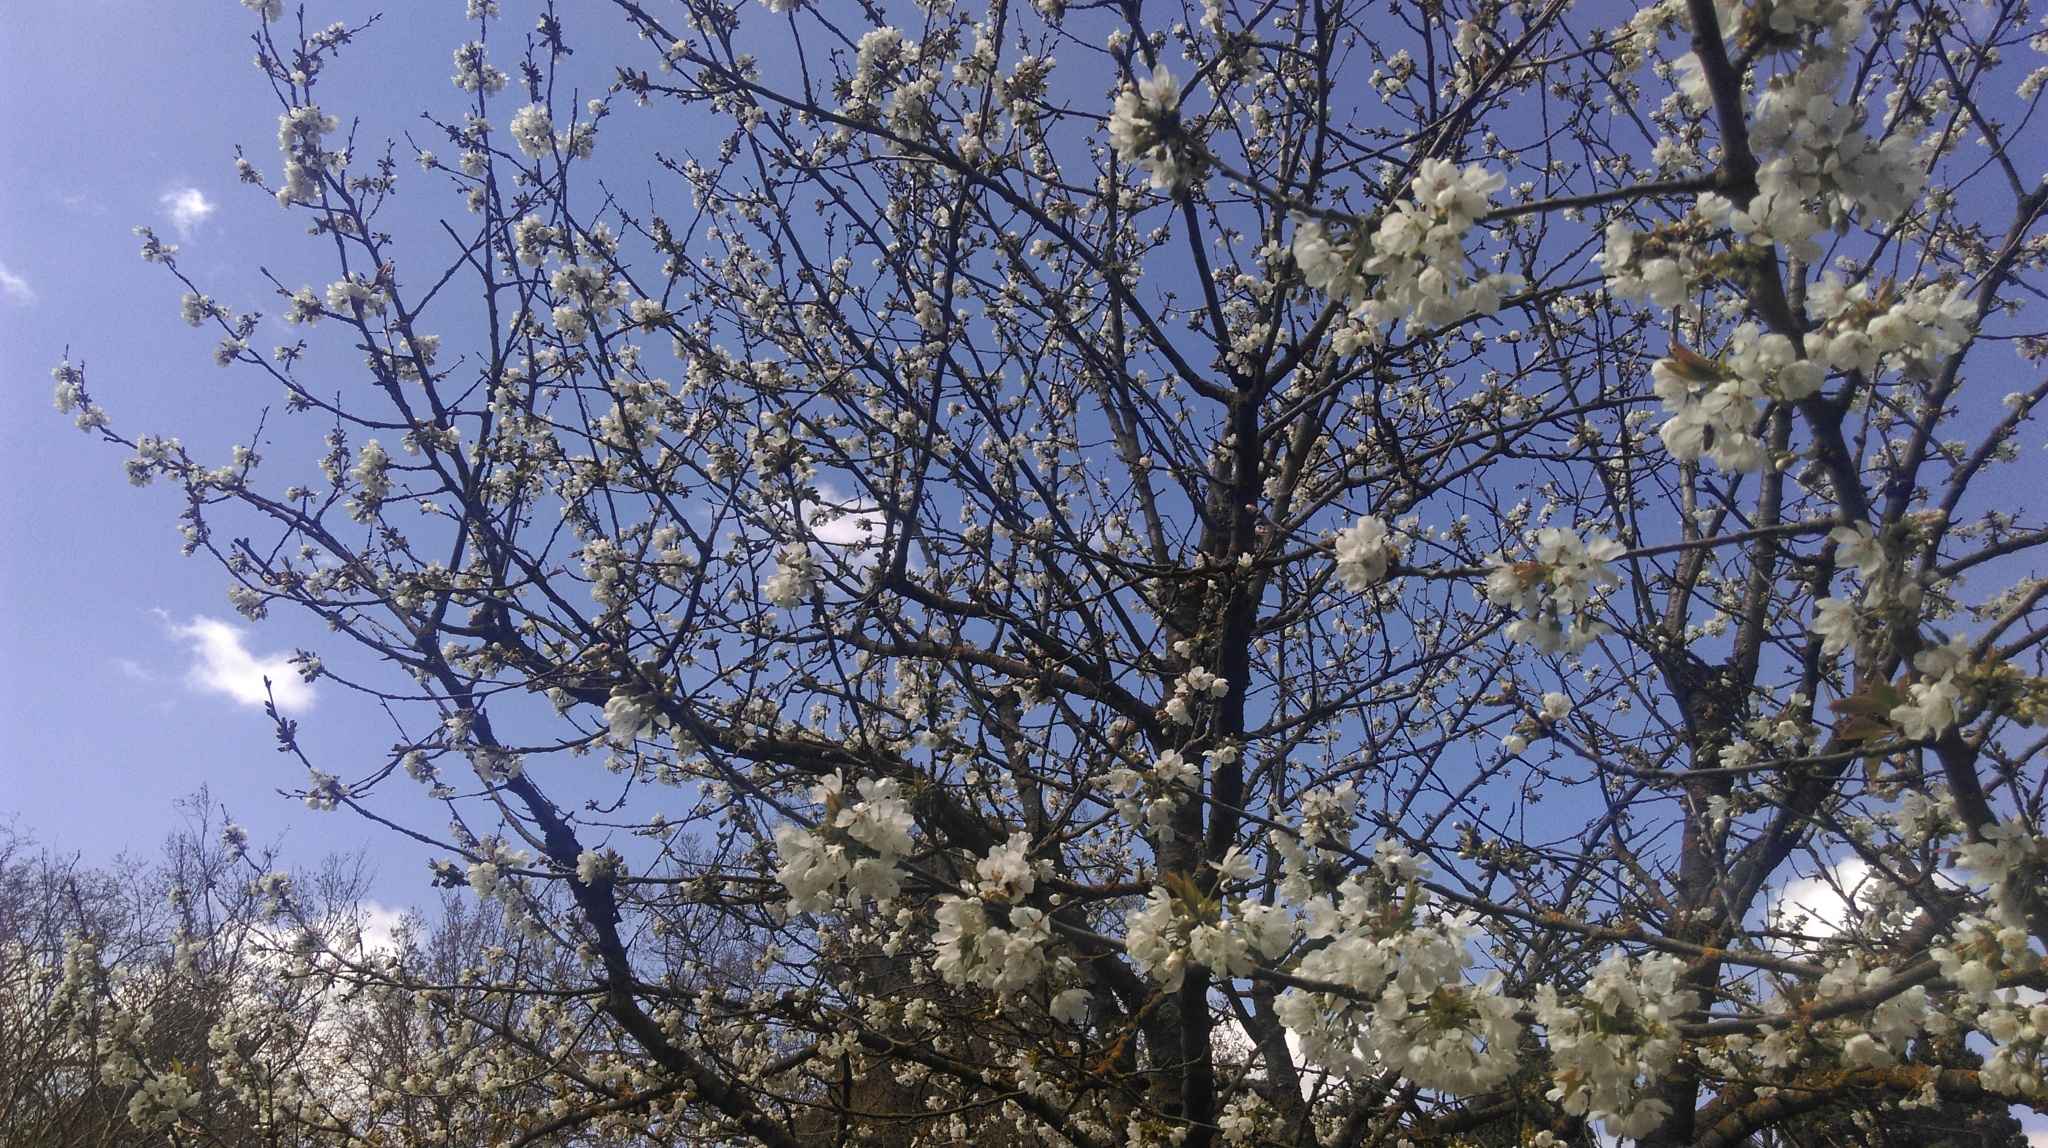 The first blossoms of spring by Paul Shrimpton